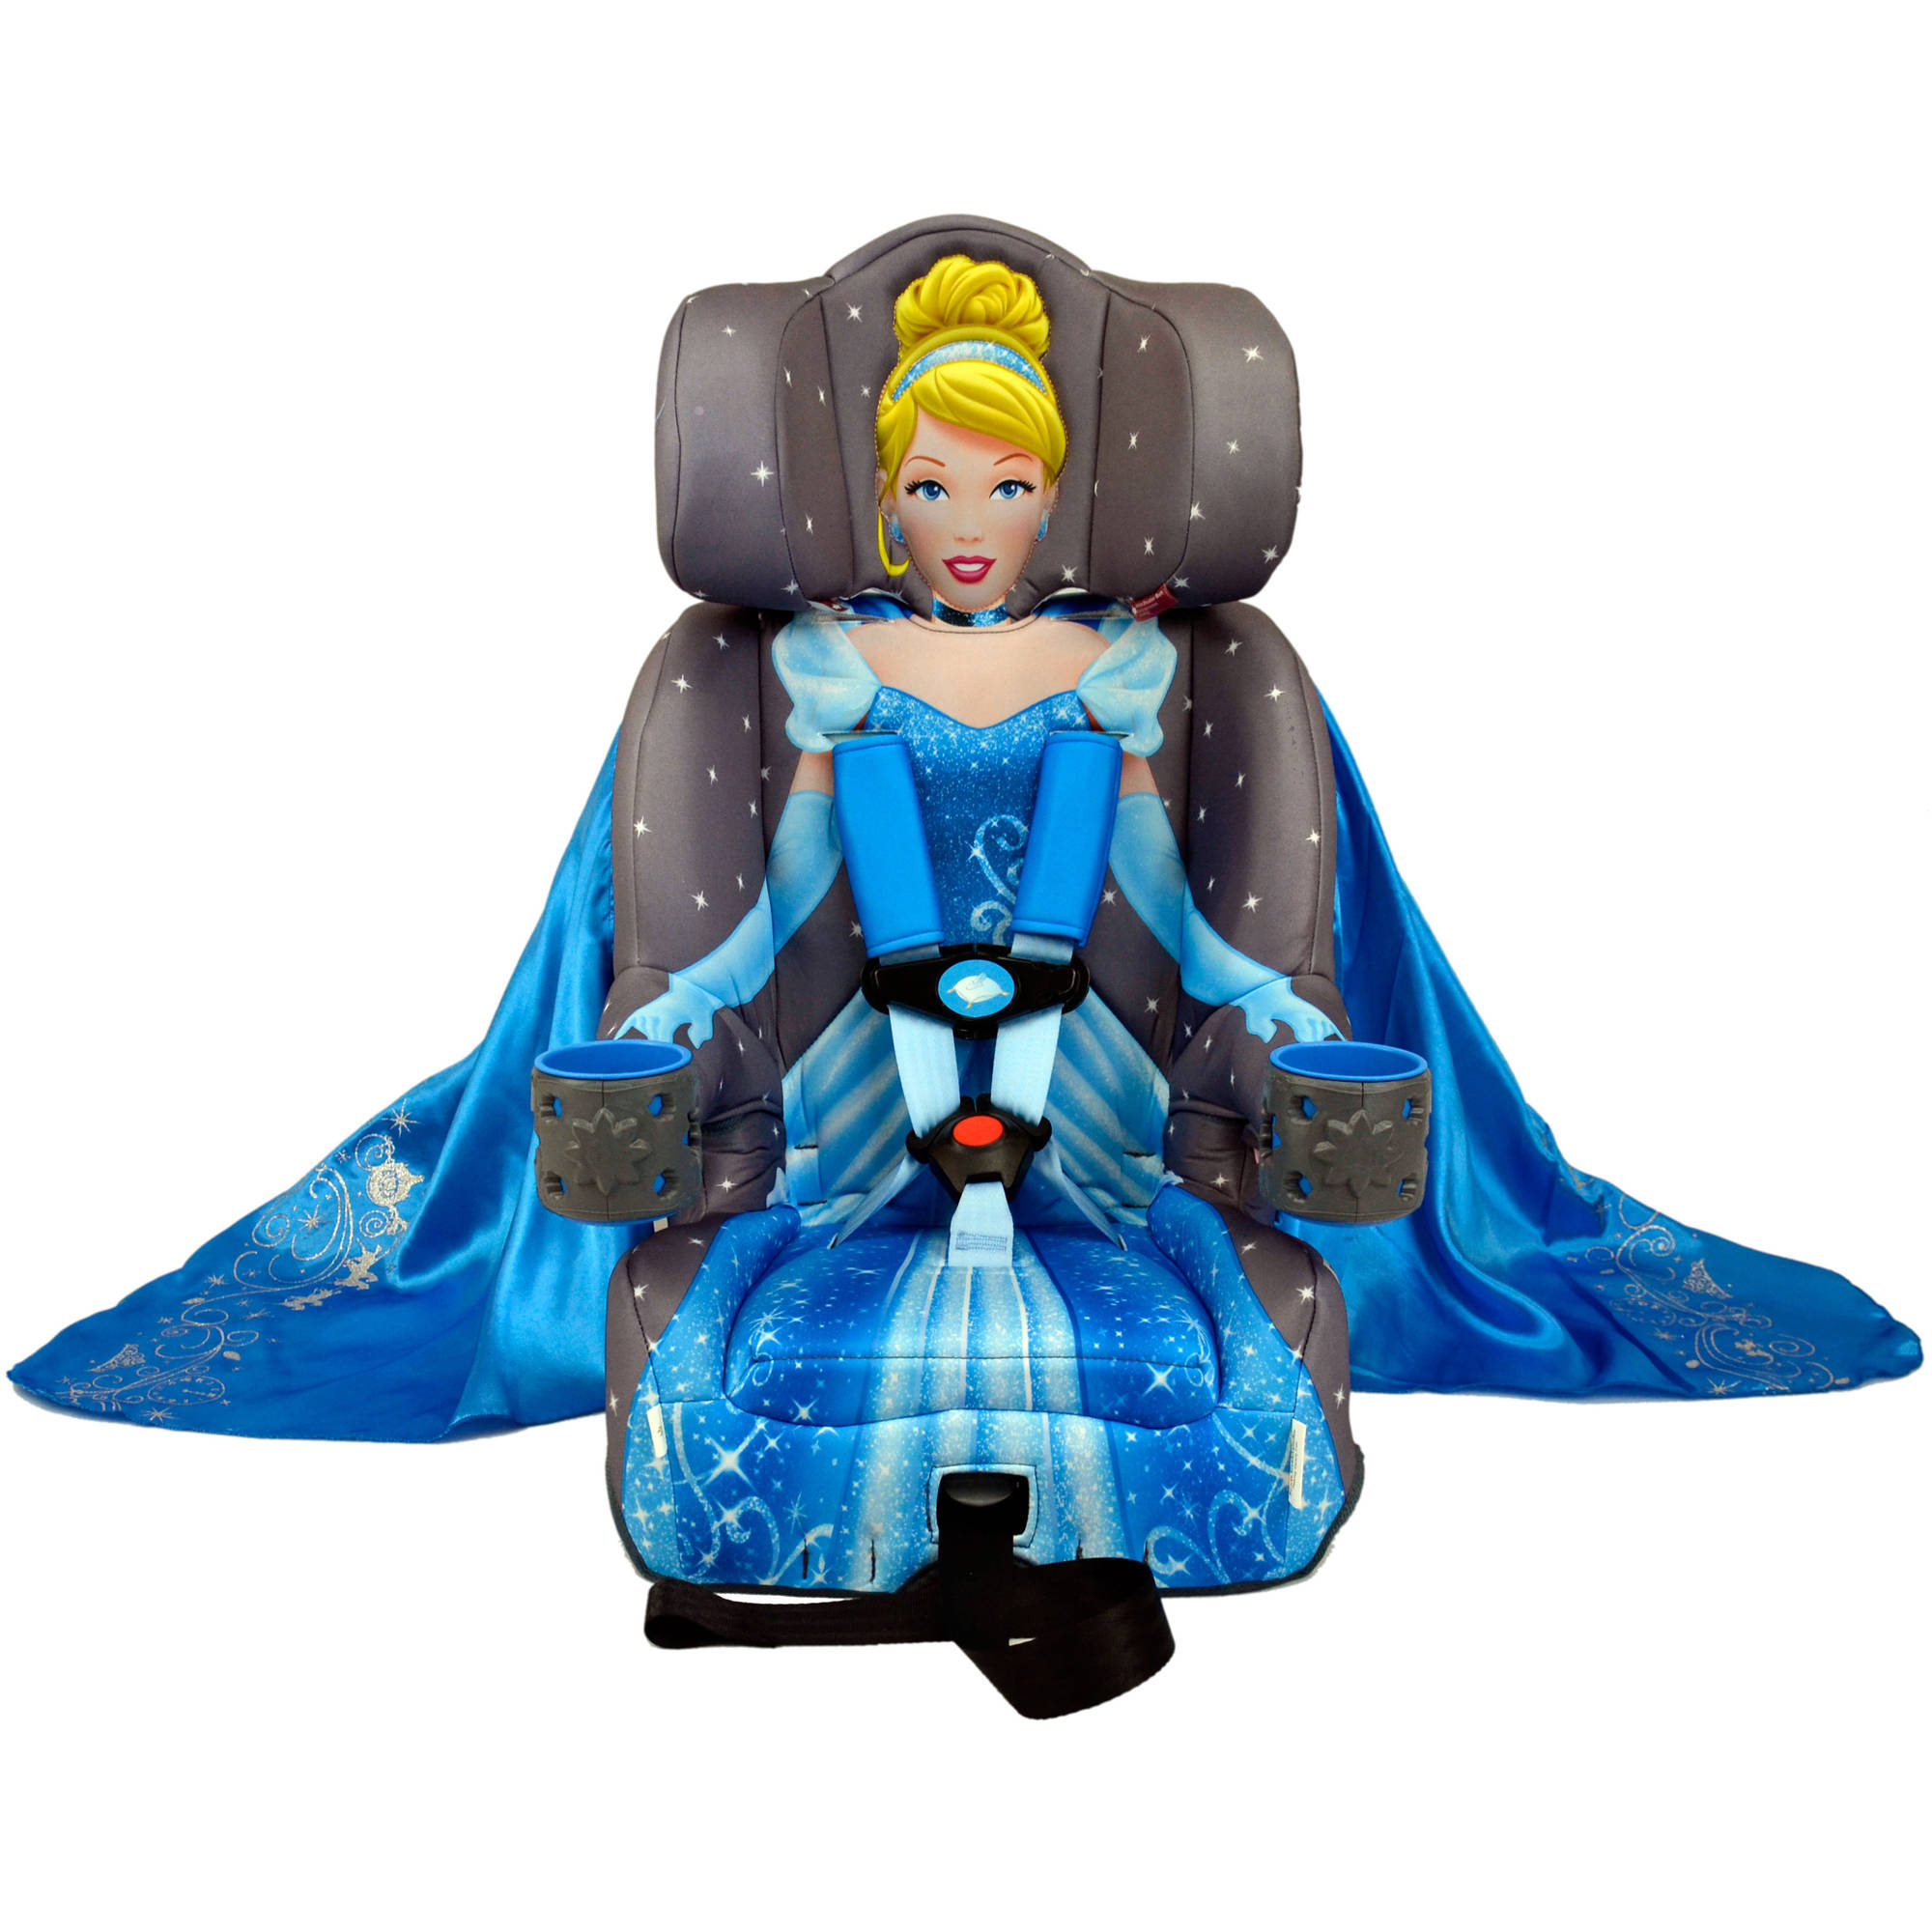 Kidsembrace Friendship Combination Harness Booster Car Seat, Cinderella Platinum